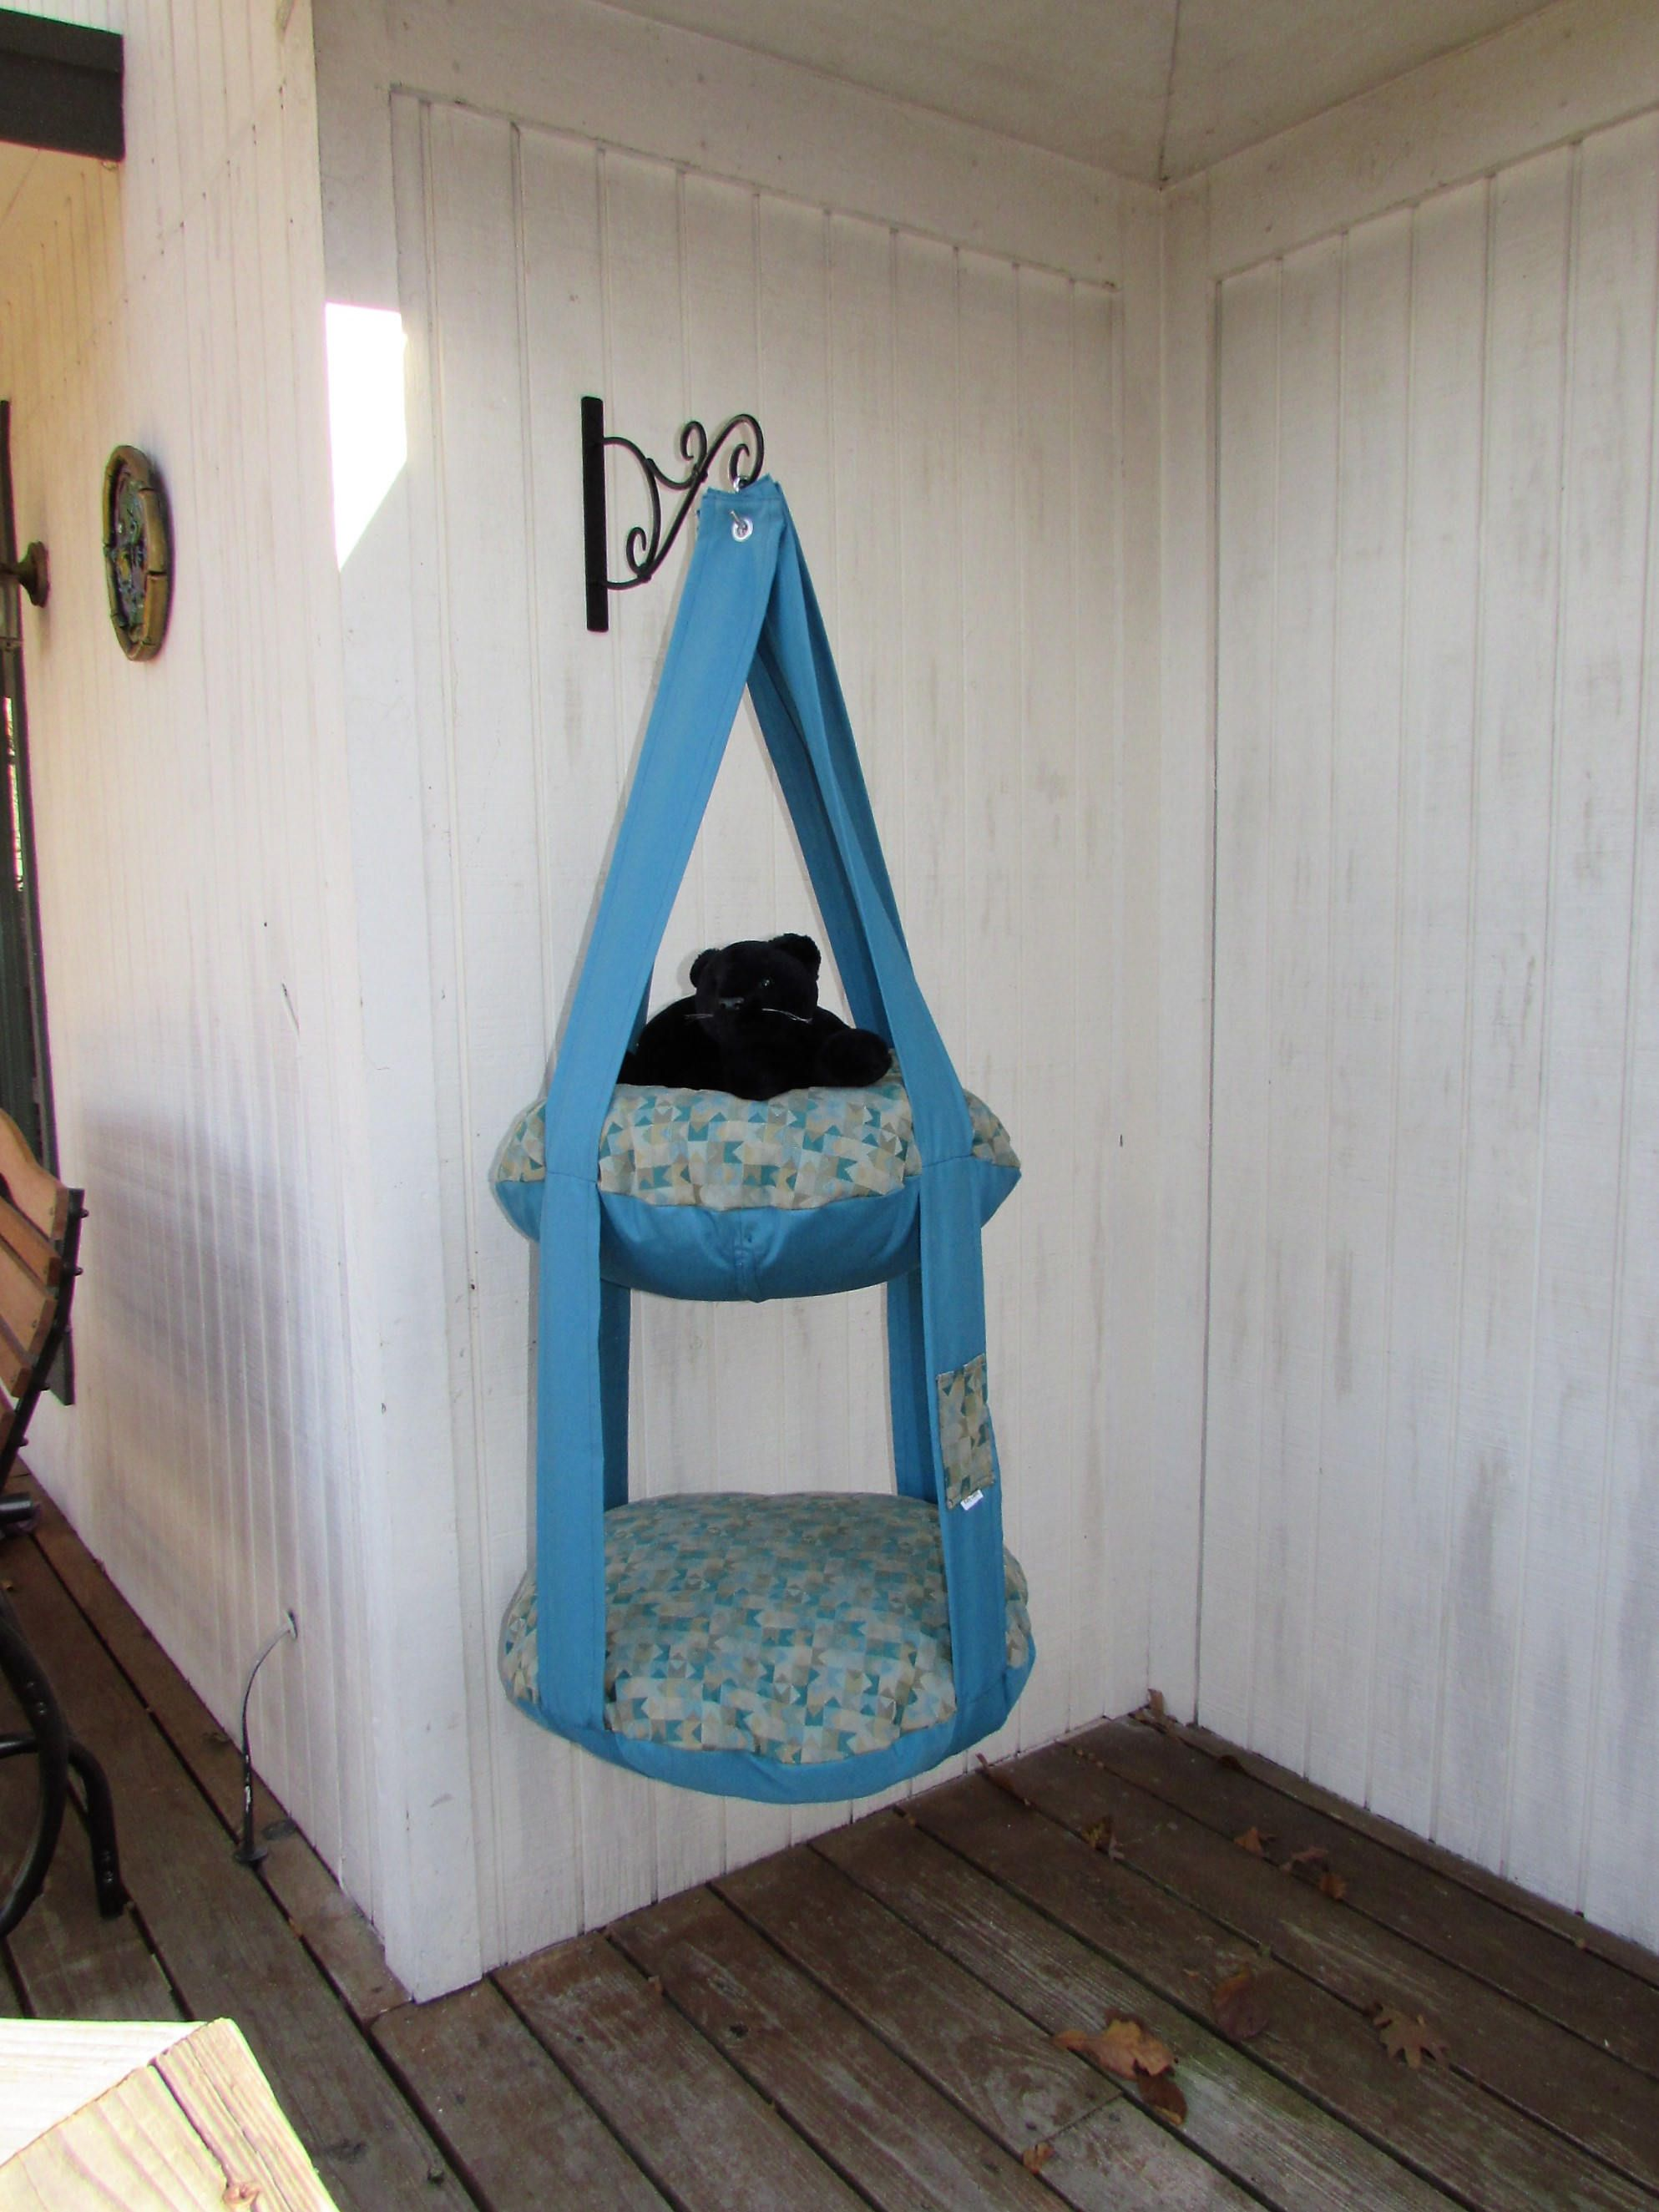 Pet Gift Cat Bed Kitty Cloud Hanging Cat Bed Double Cat Bed Teal Geometric Print Pet Furniture Cat Tree Catio